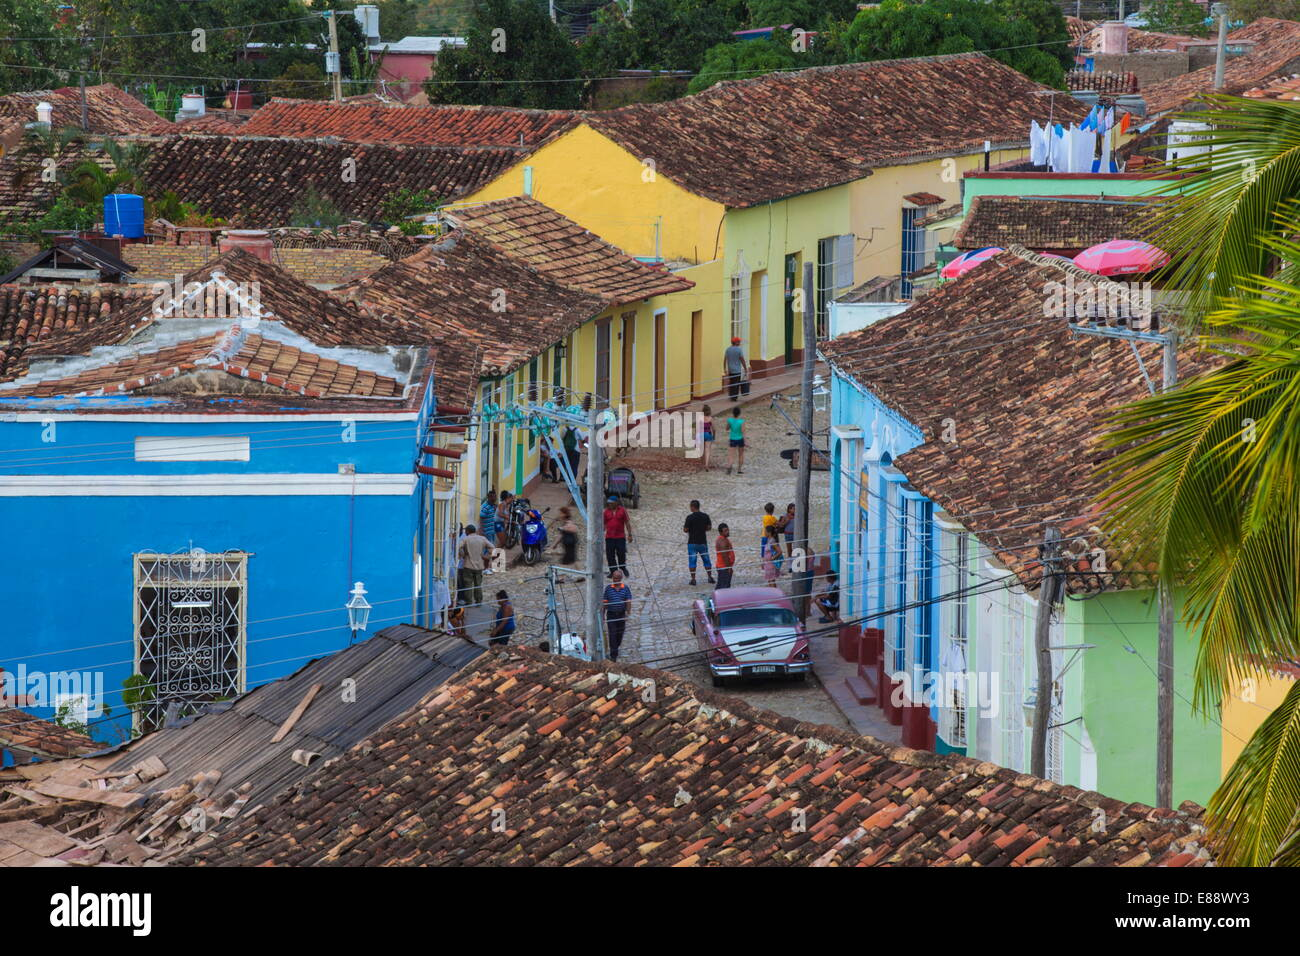 View of Trinidad, Sancti Spiritus Province, Cuba, West Indies, Caribbean, Central America - Stock Image